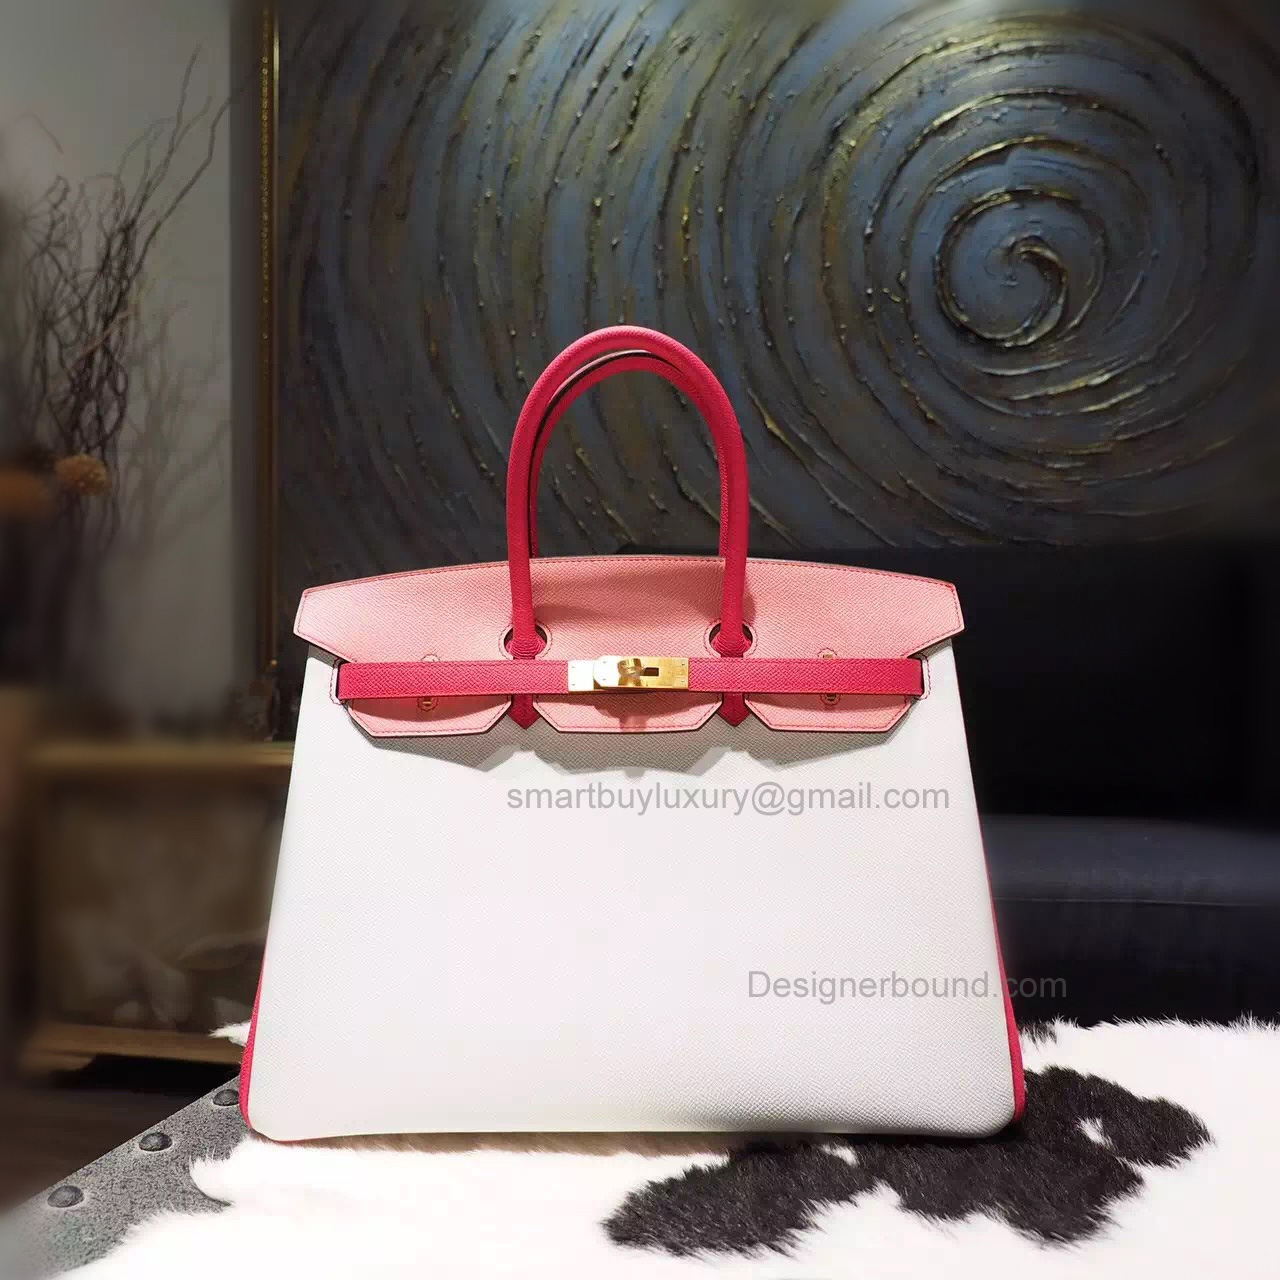 Hand Stitched Birkin 35 Bag in Multicolored 1q Rose Confetti Epsom Calfskin GHW